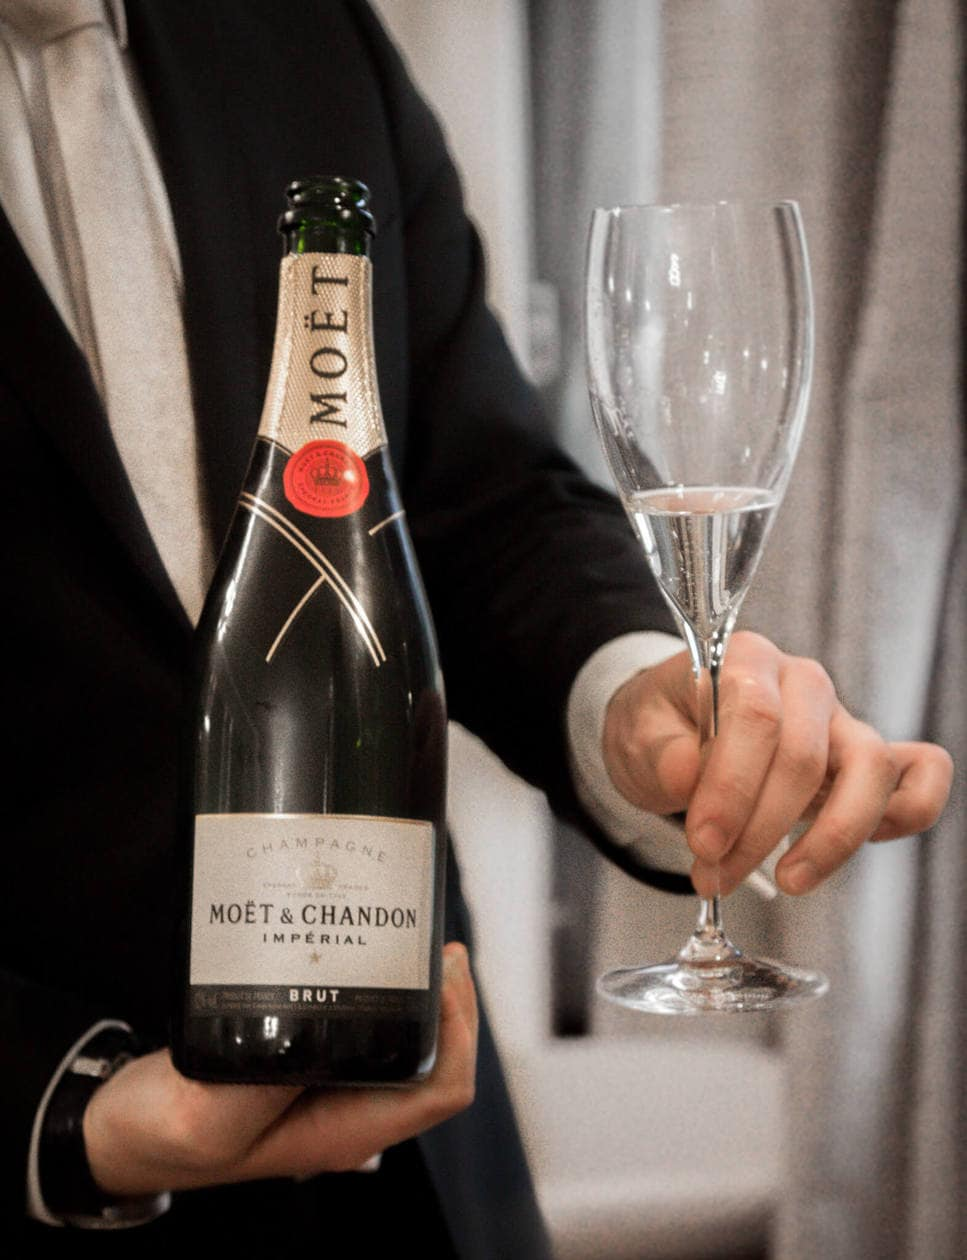 Moet and Chandon Champagne Tasting in France